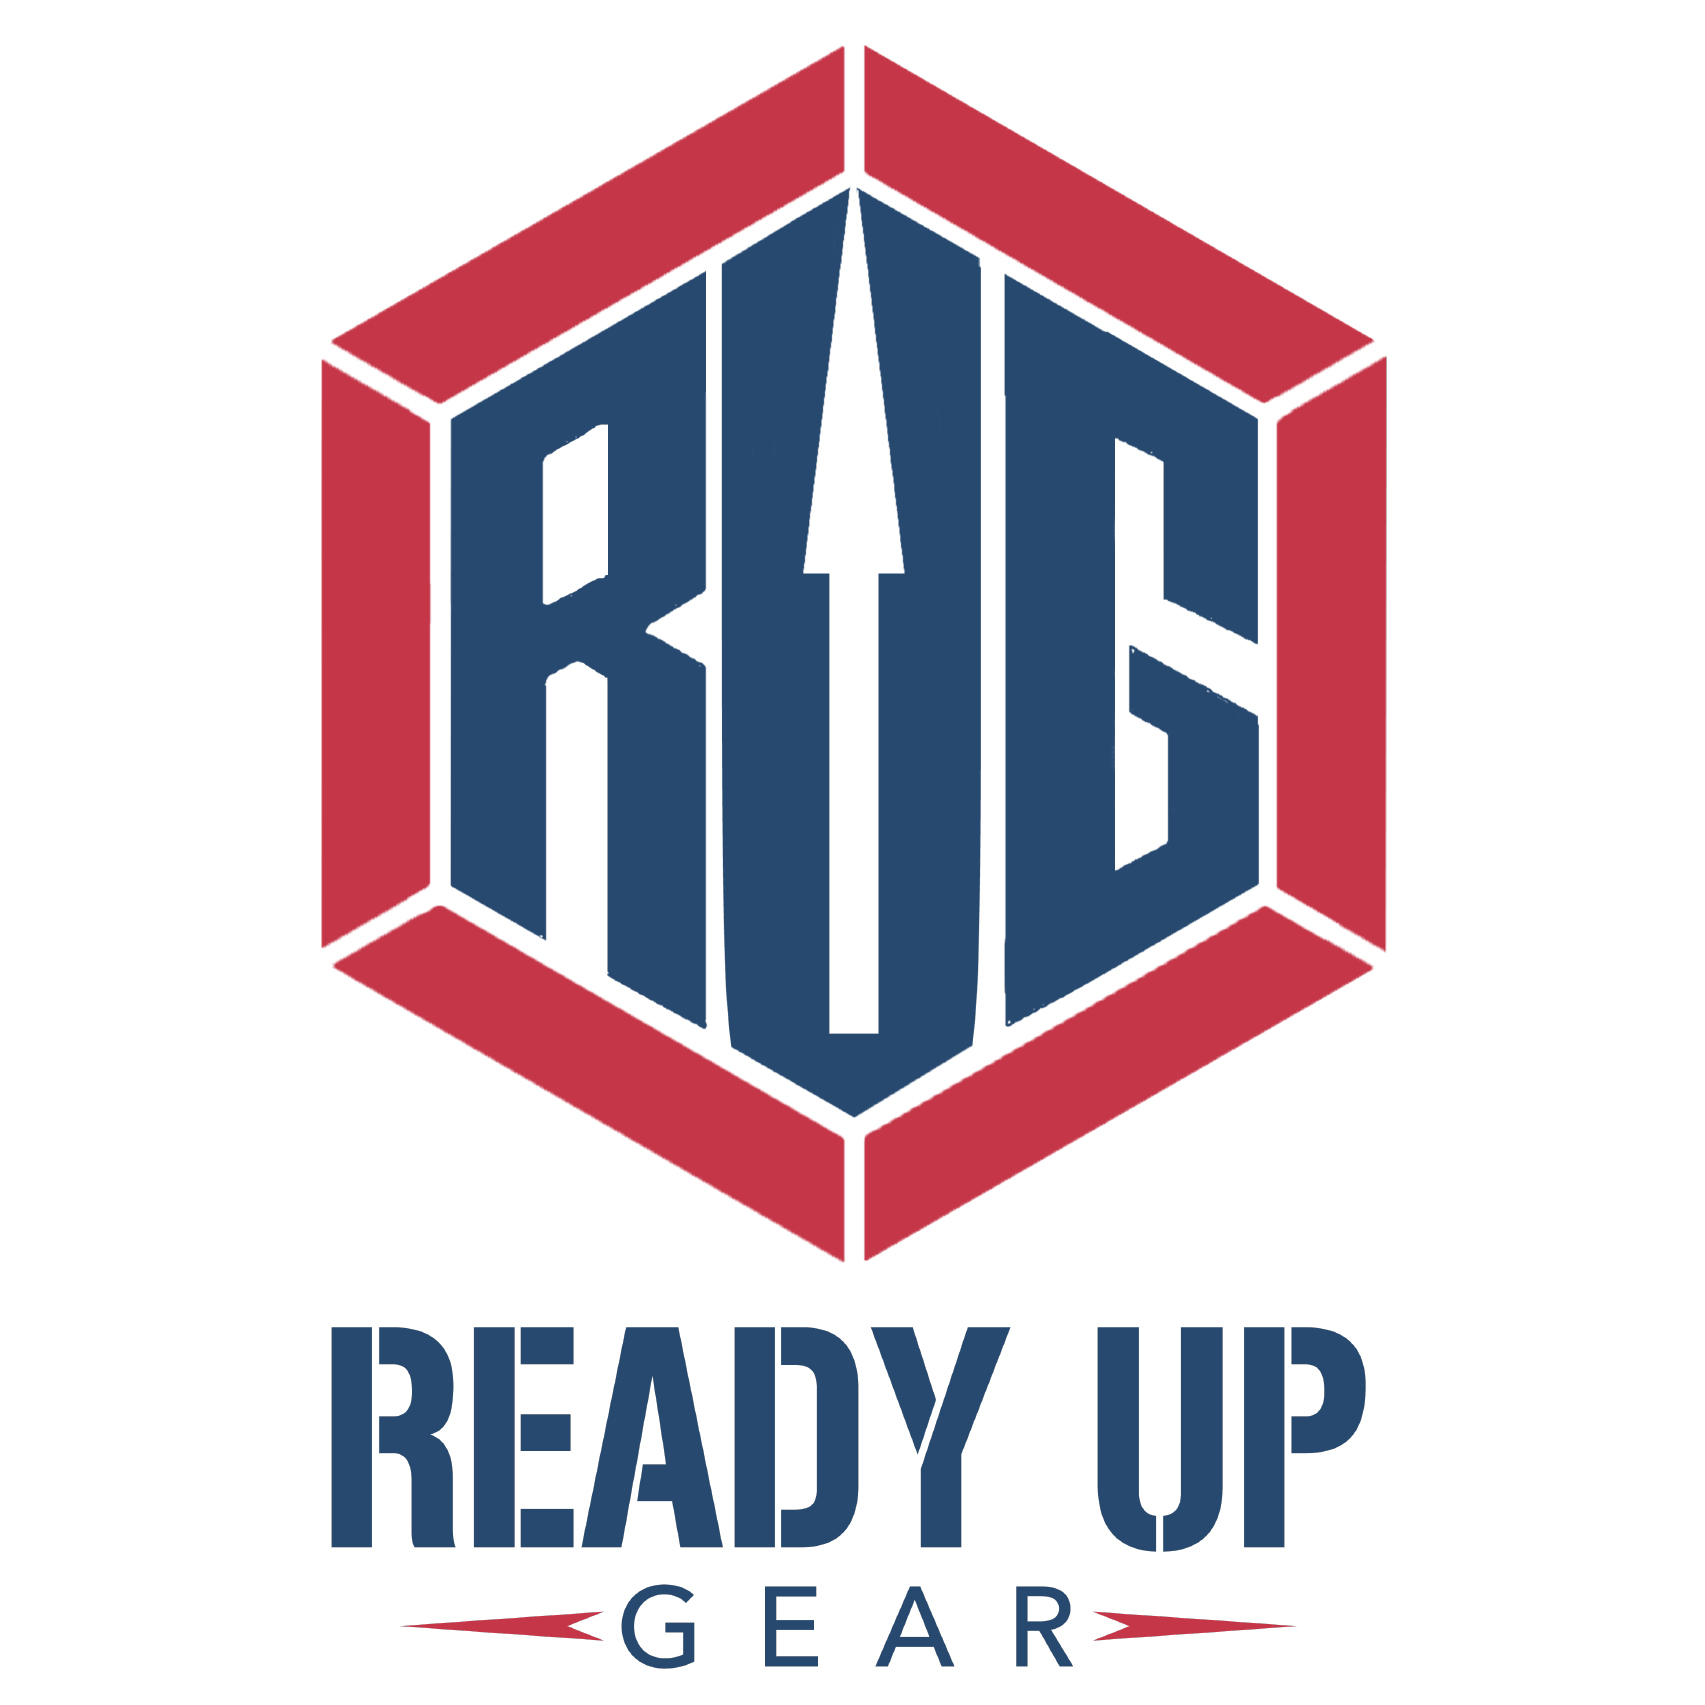 Ready Up Gear Square Logo